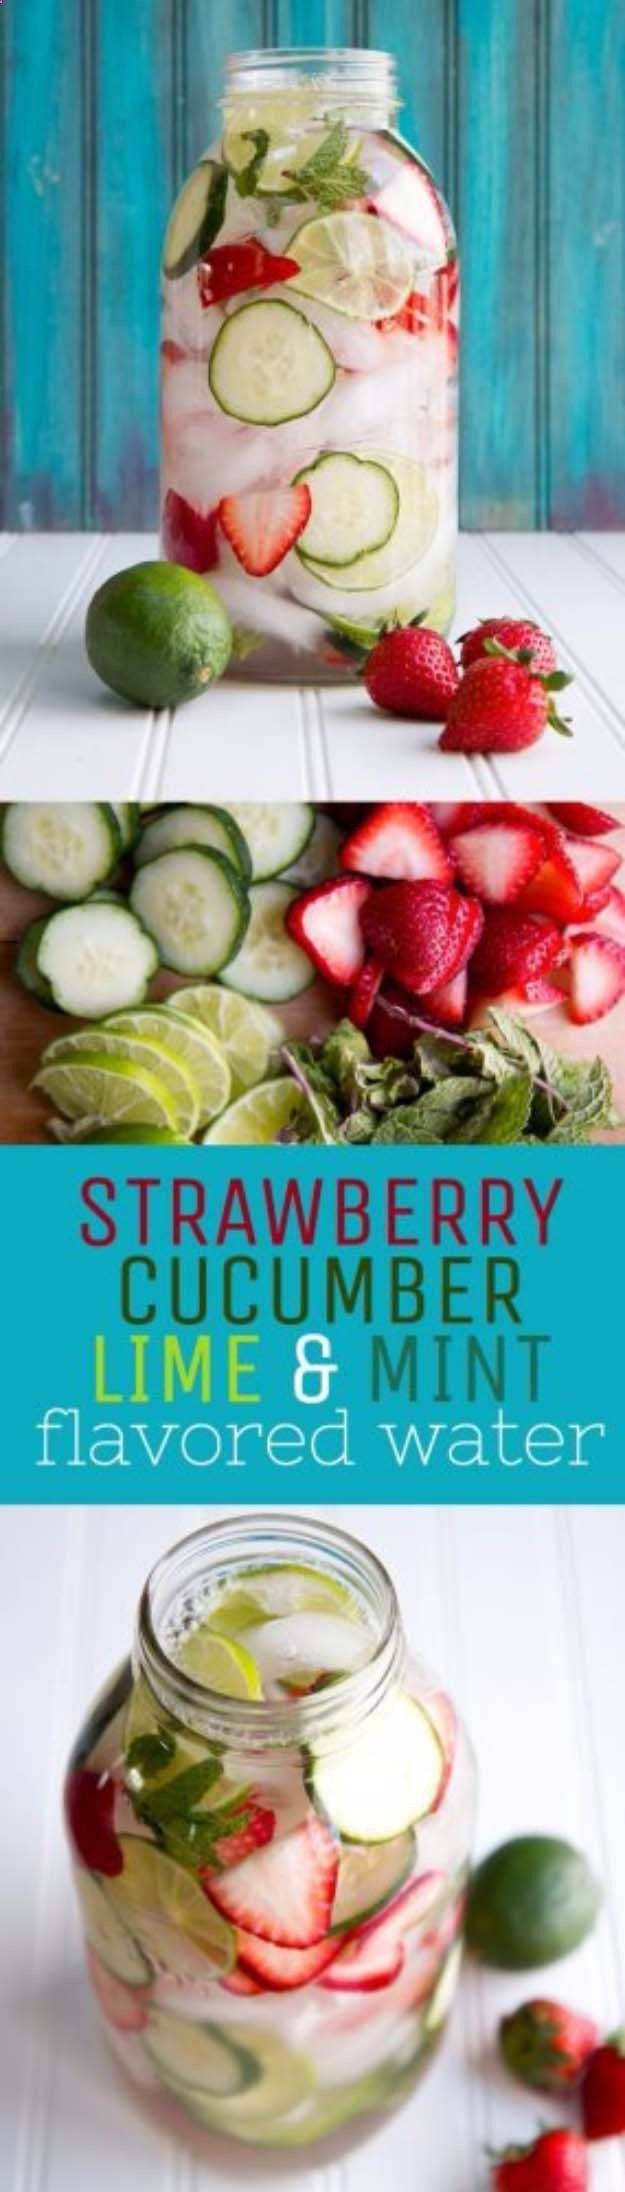 31 Detox Water Recipes for Drinks To Cleanse Skin and Body. Easy to Make Waters and Tea Promote Health, Diet and Support Weight loss | Strawberry, Lime, Cucumber and Mint Water Recipe diyjoy.com/...